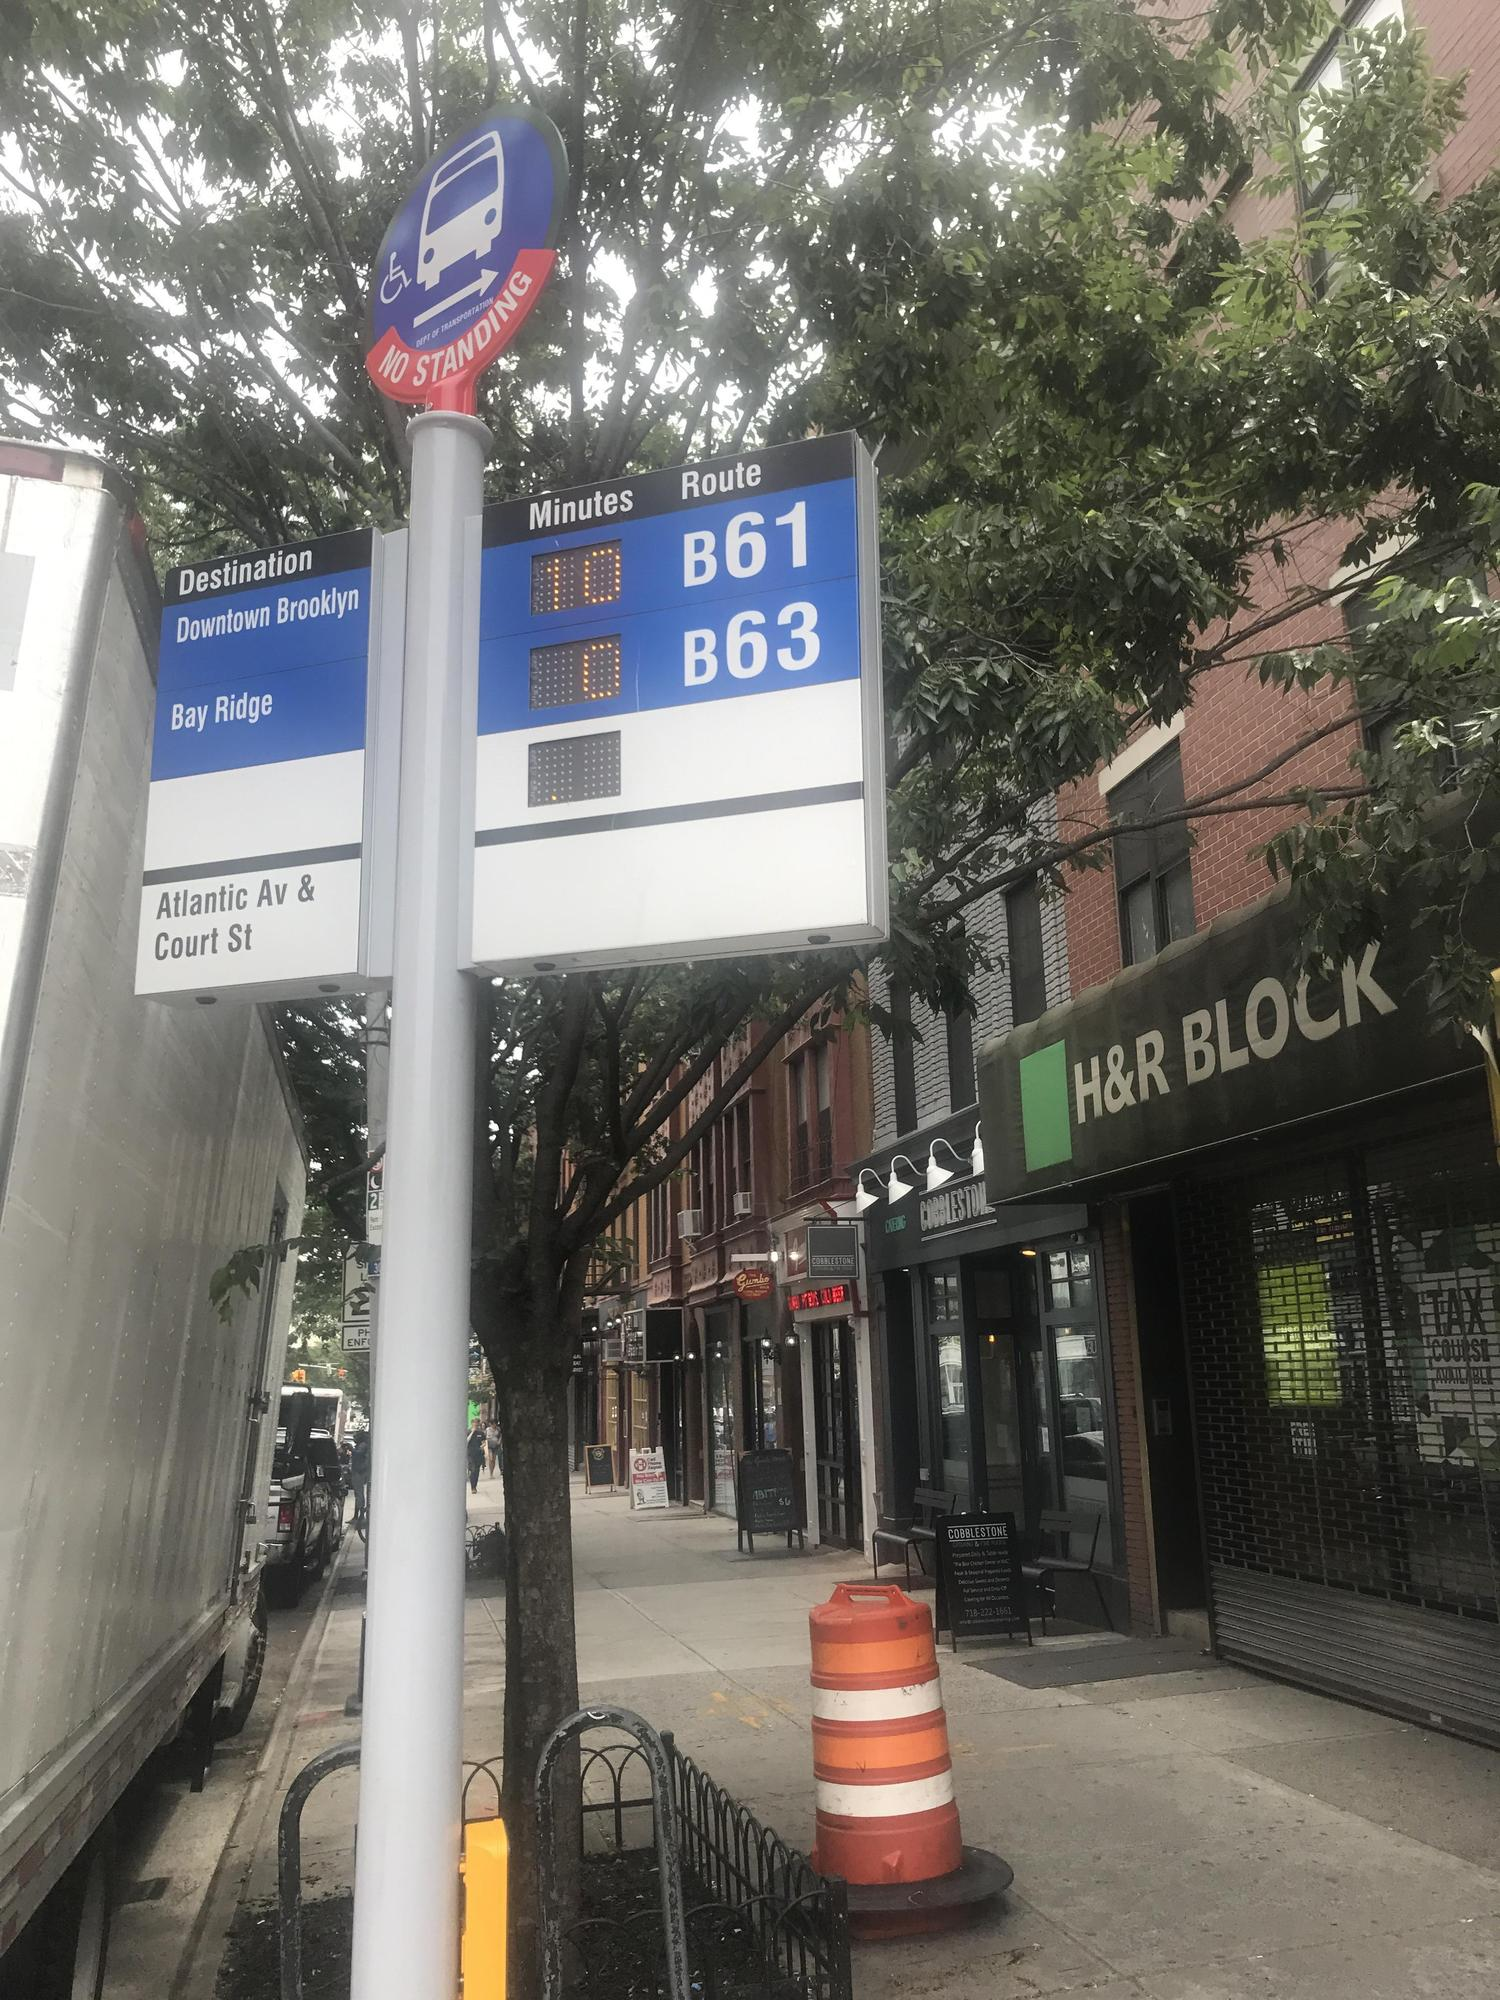 The new bus countdown timers are here! Atlantic Ave and Court St, Brooklyn